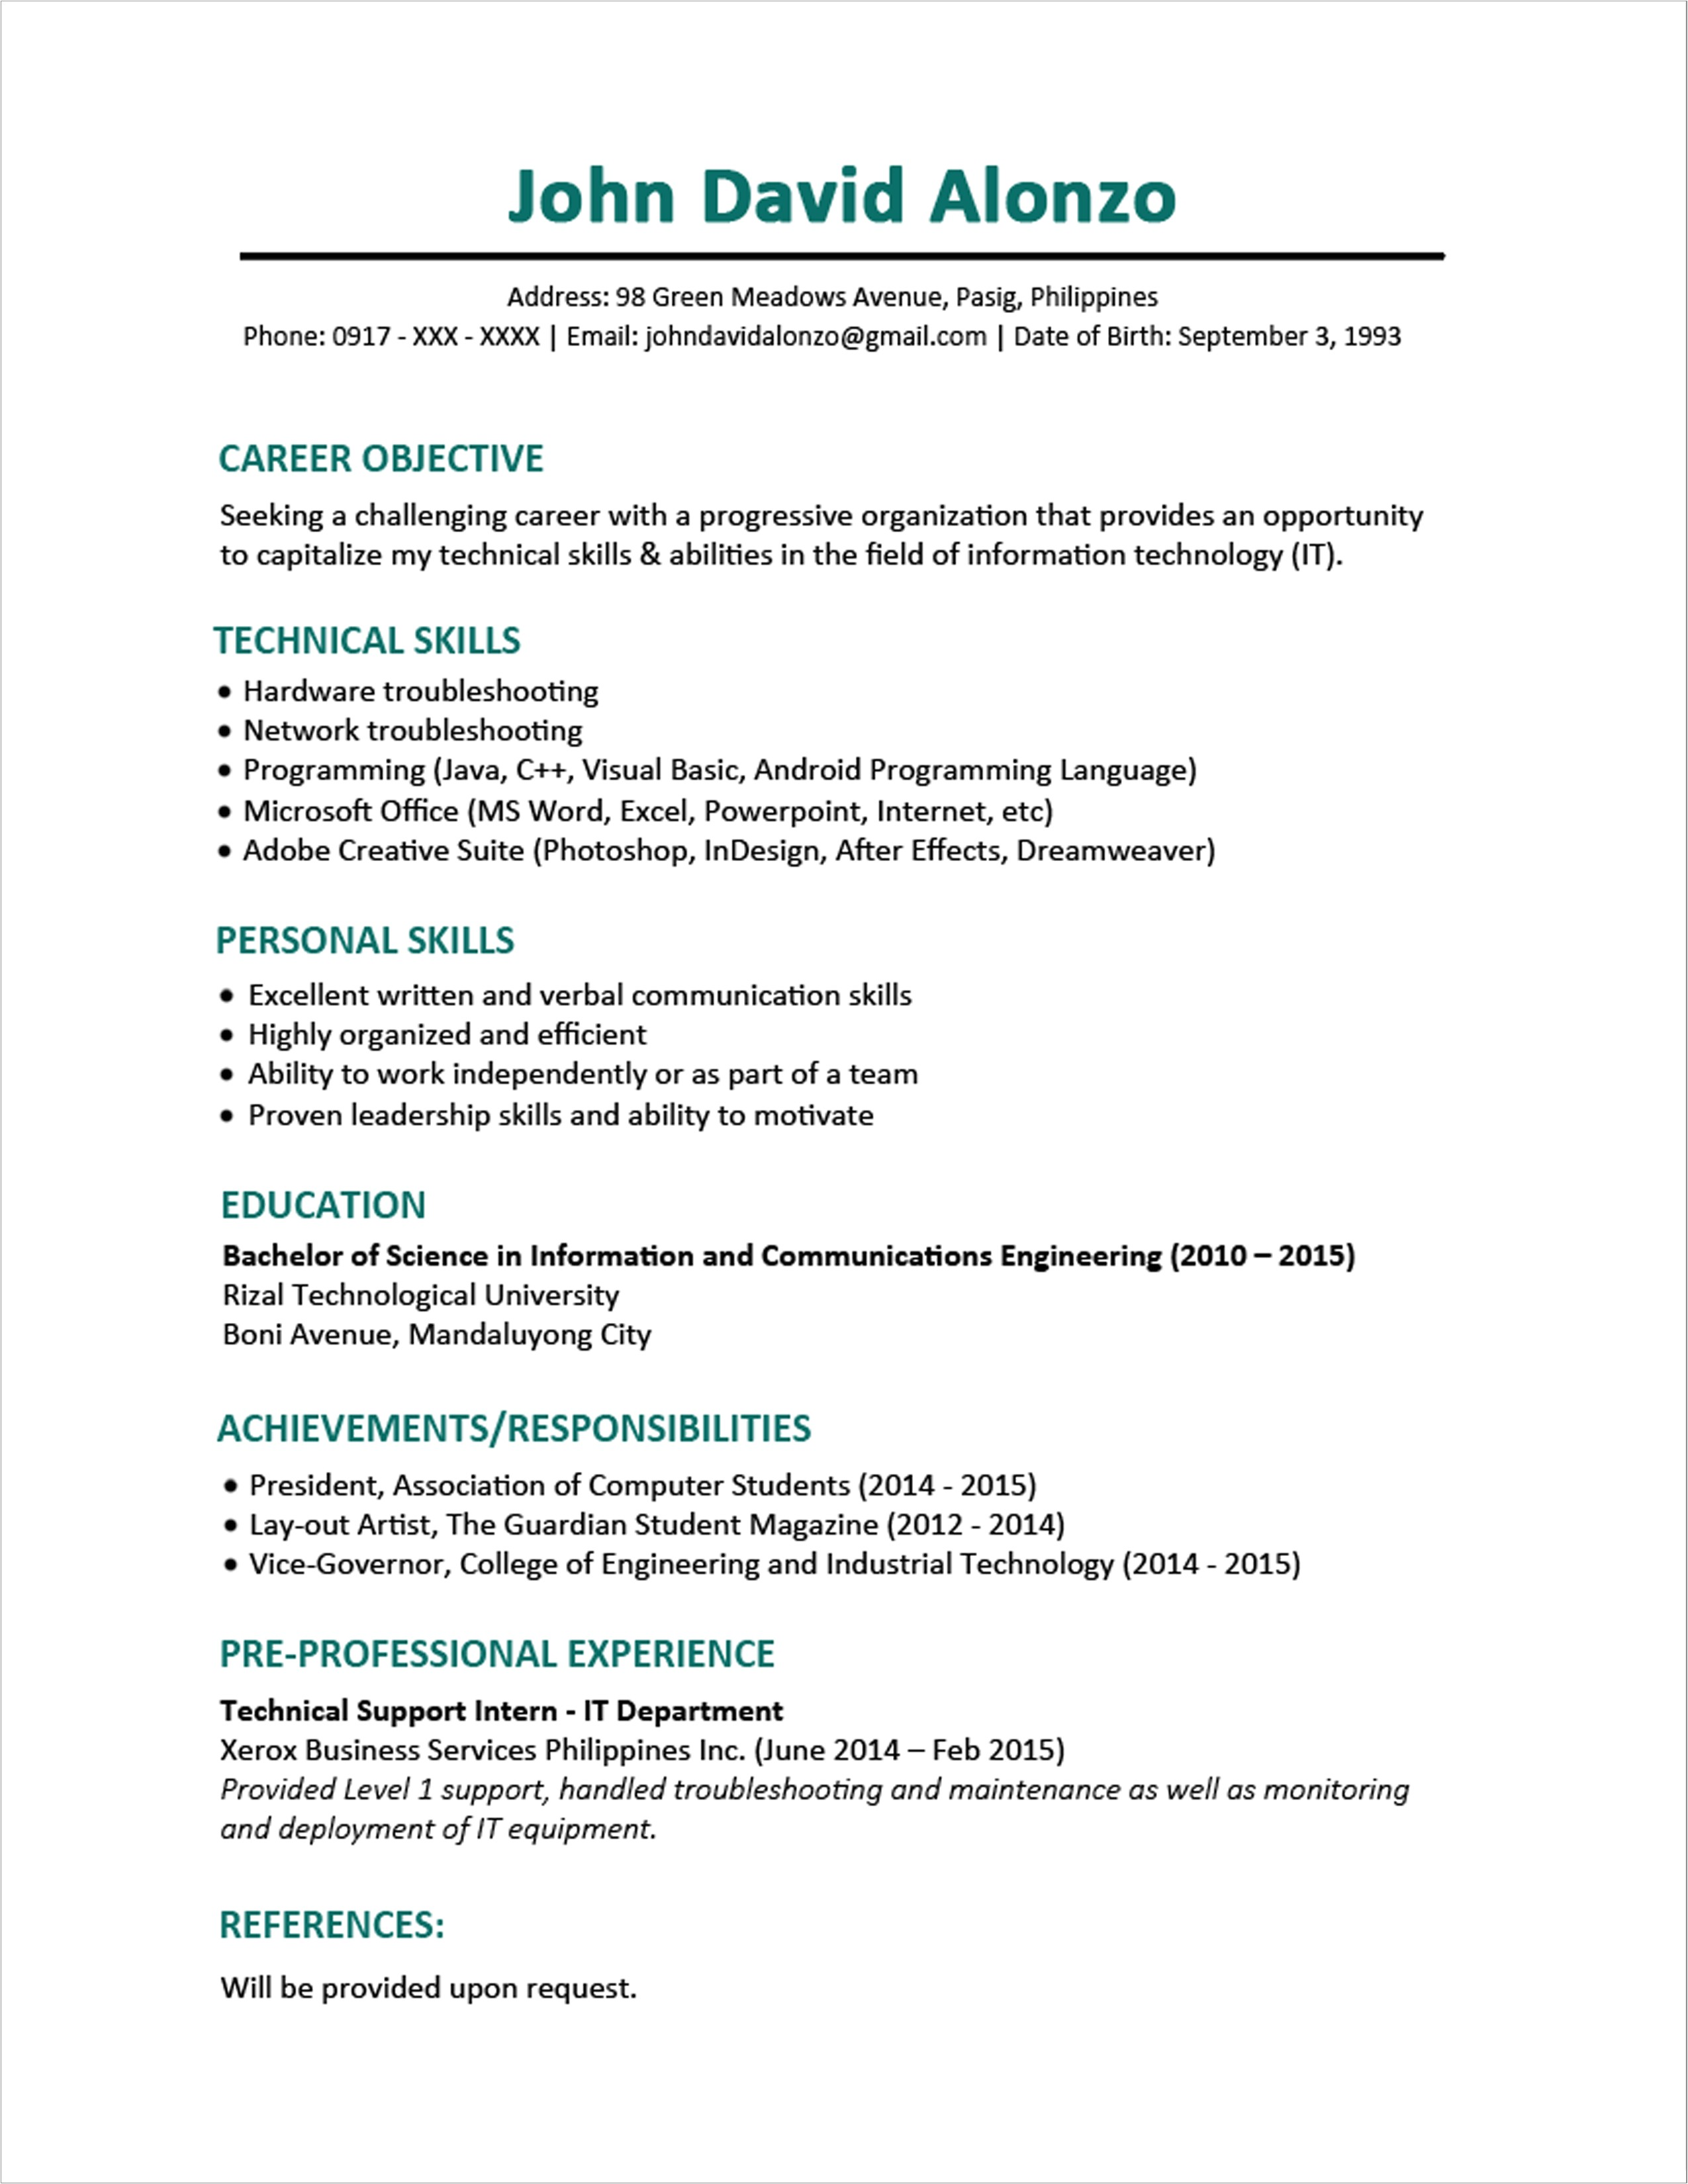 Sample Resume for A Fresh Graduate Sample Resume format for Fresh Graduates One Page format